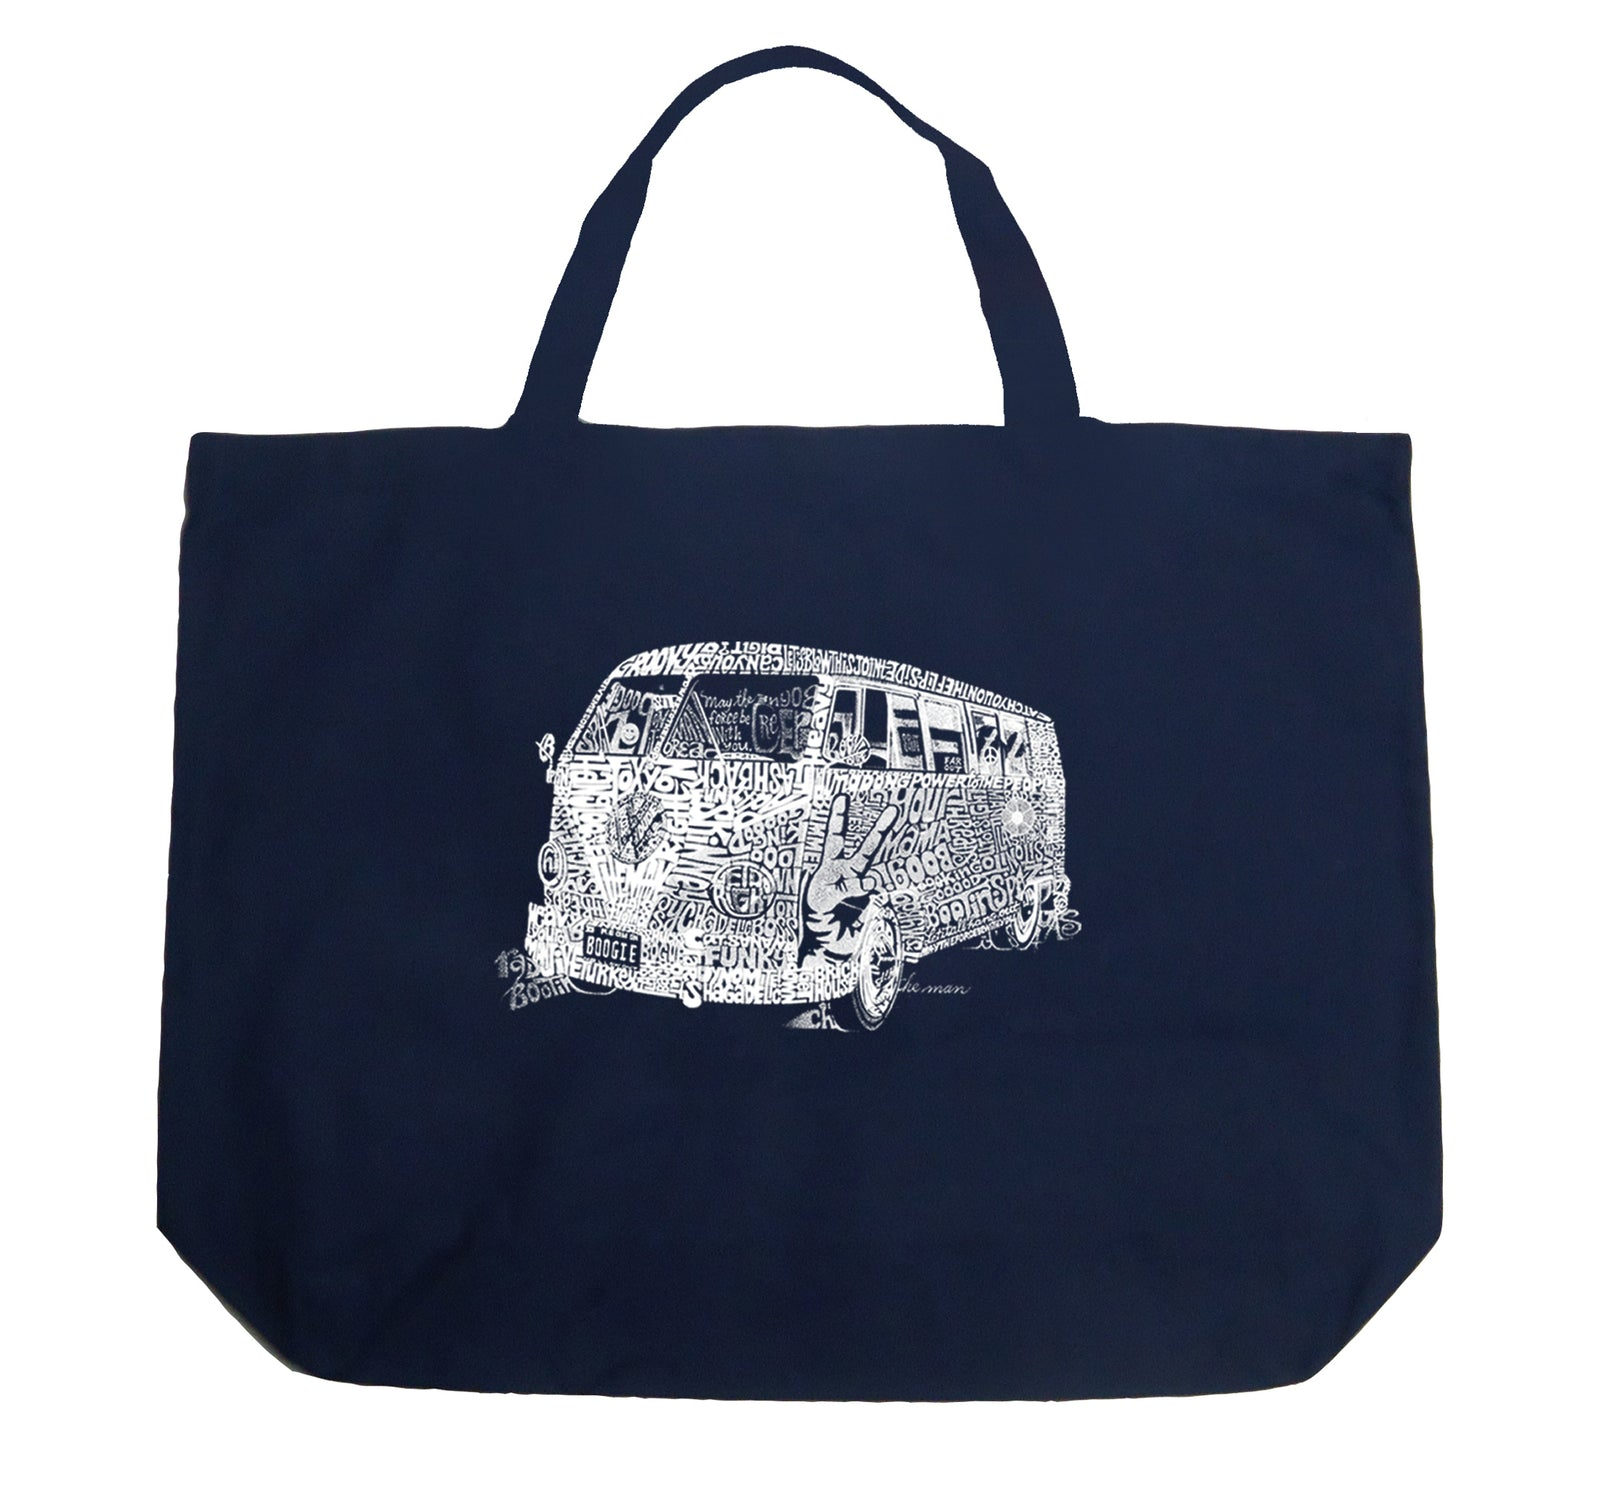 Large Tote Bag - THE 70'S